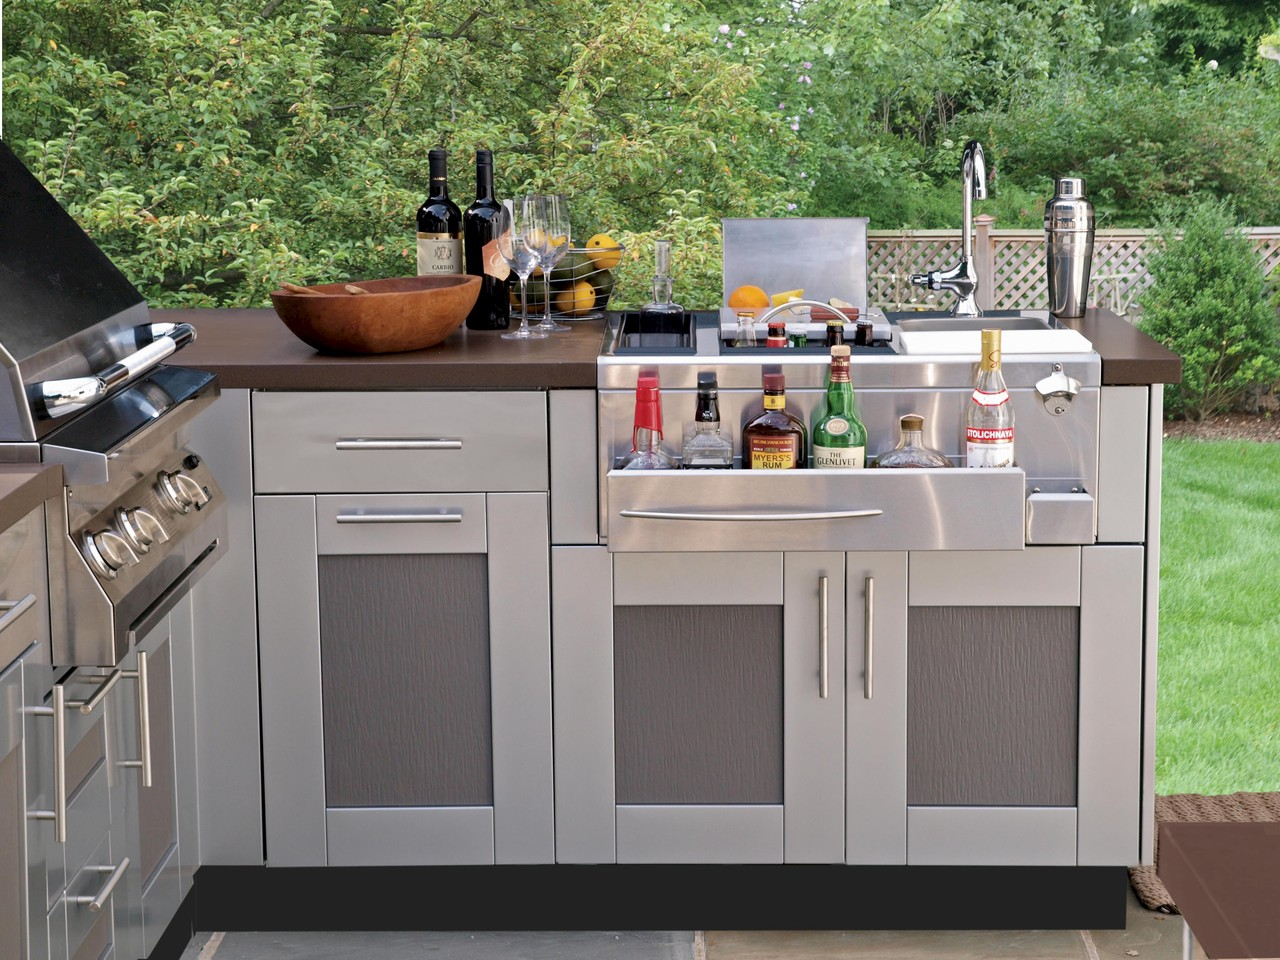 Bringing The Inside Out Outdoor Kitchen Cabinetry Week Summer - Outdoor kitchens cabinets